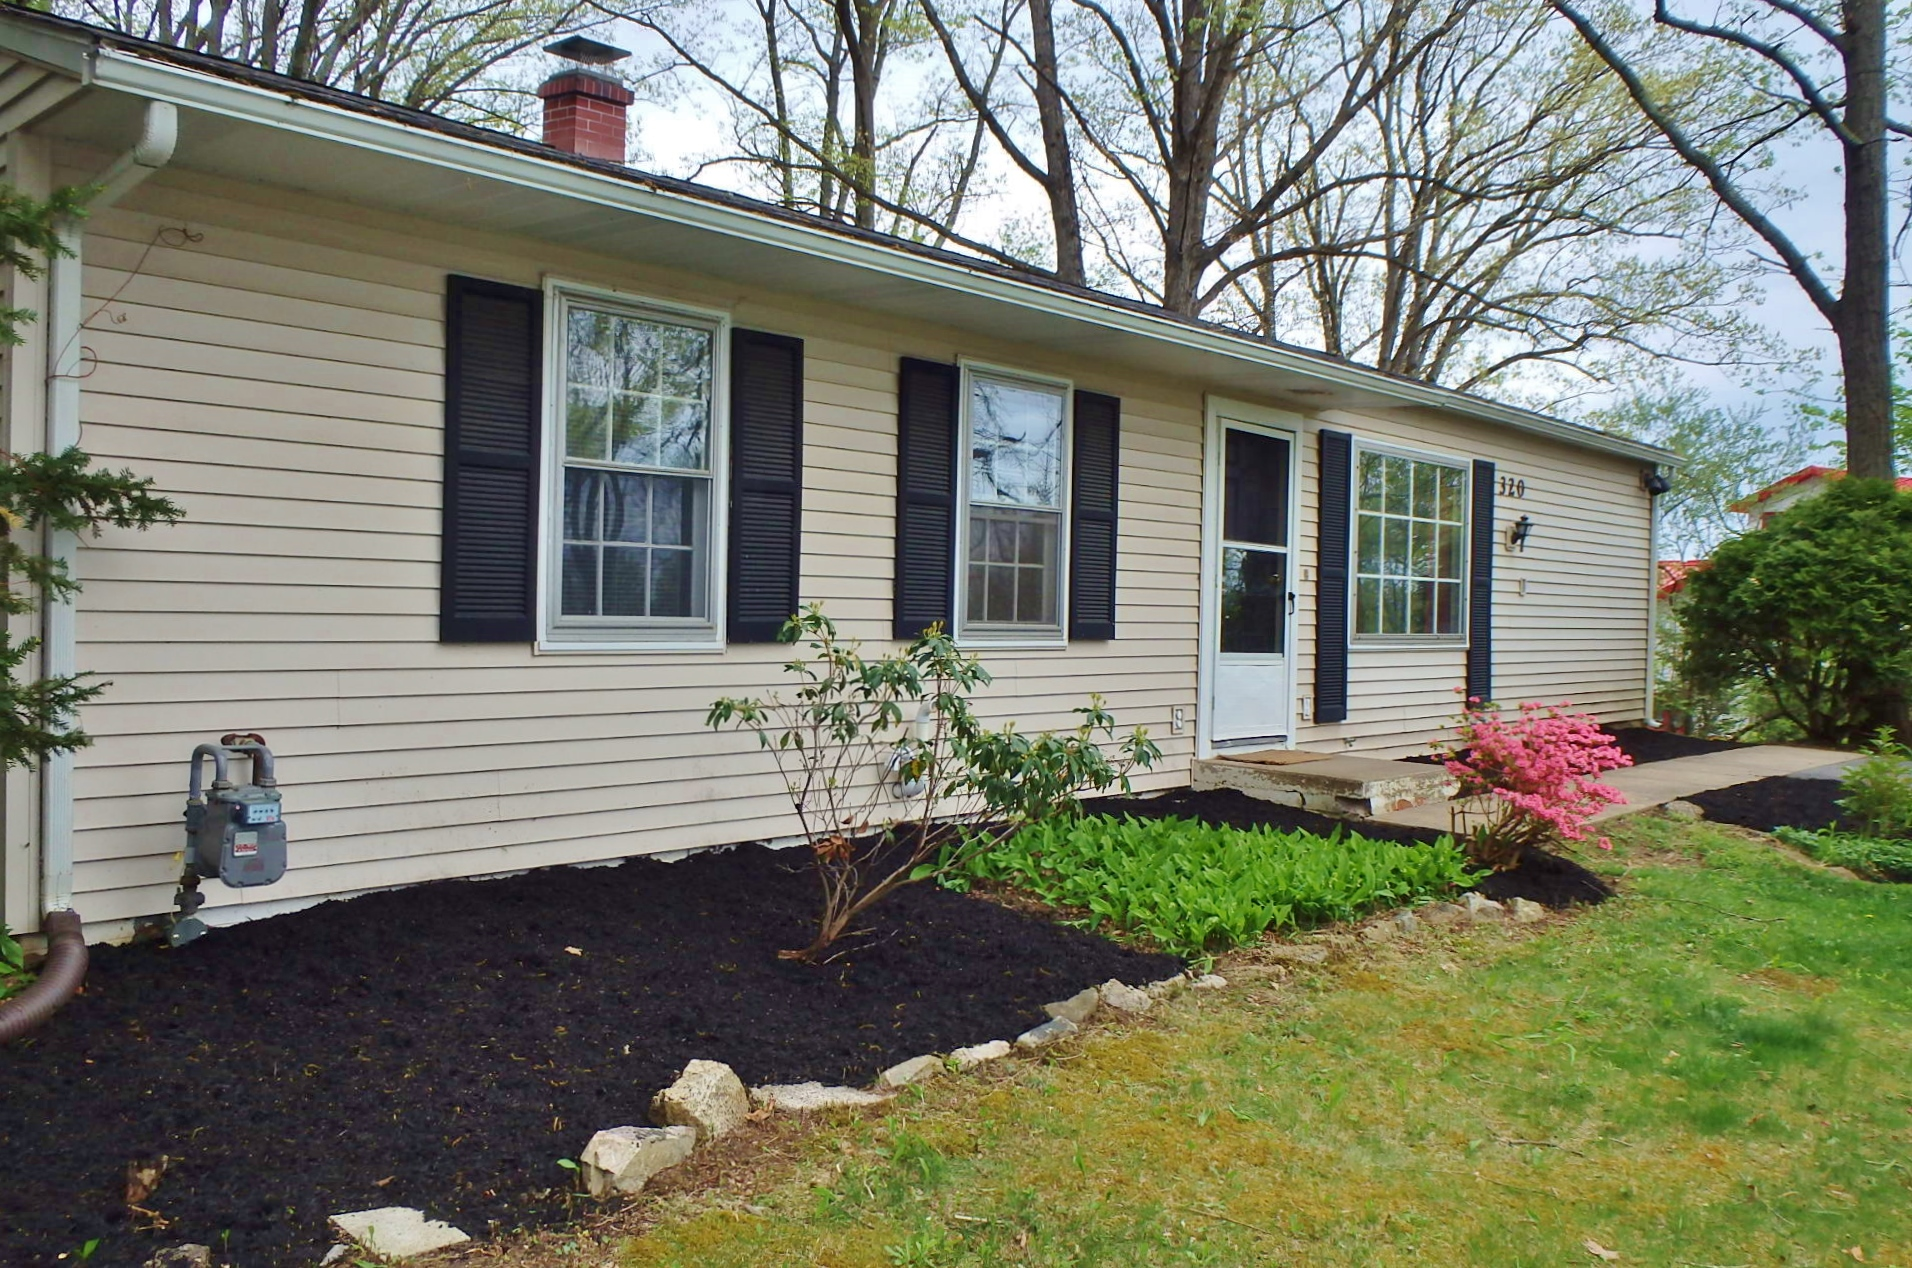 320 Patton Lane, 3 Bedroom House For Rent in State College, PA